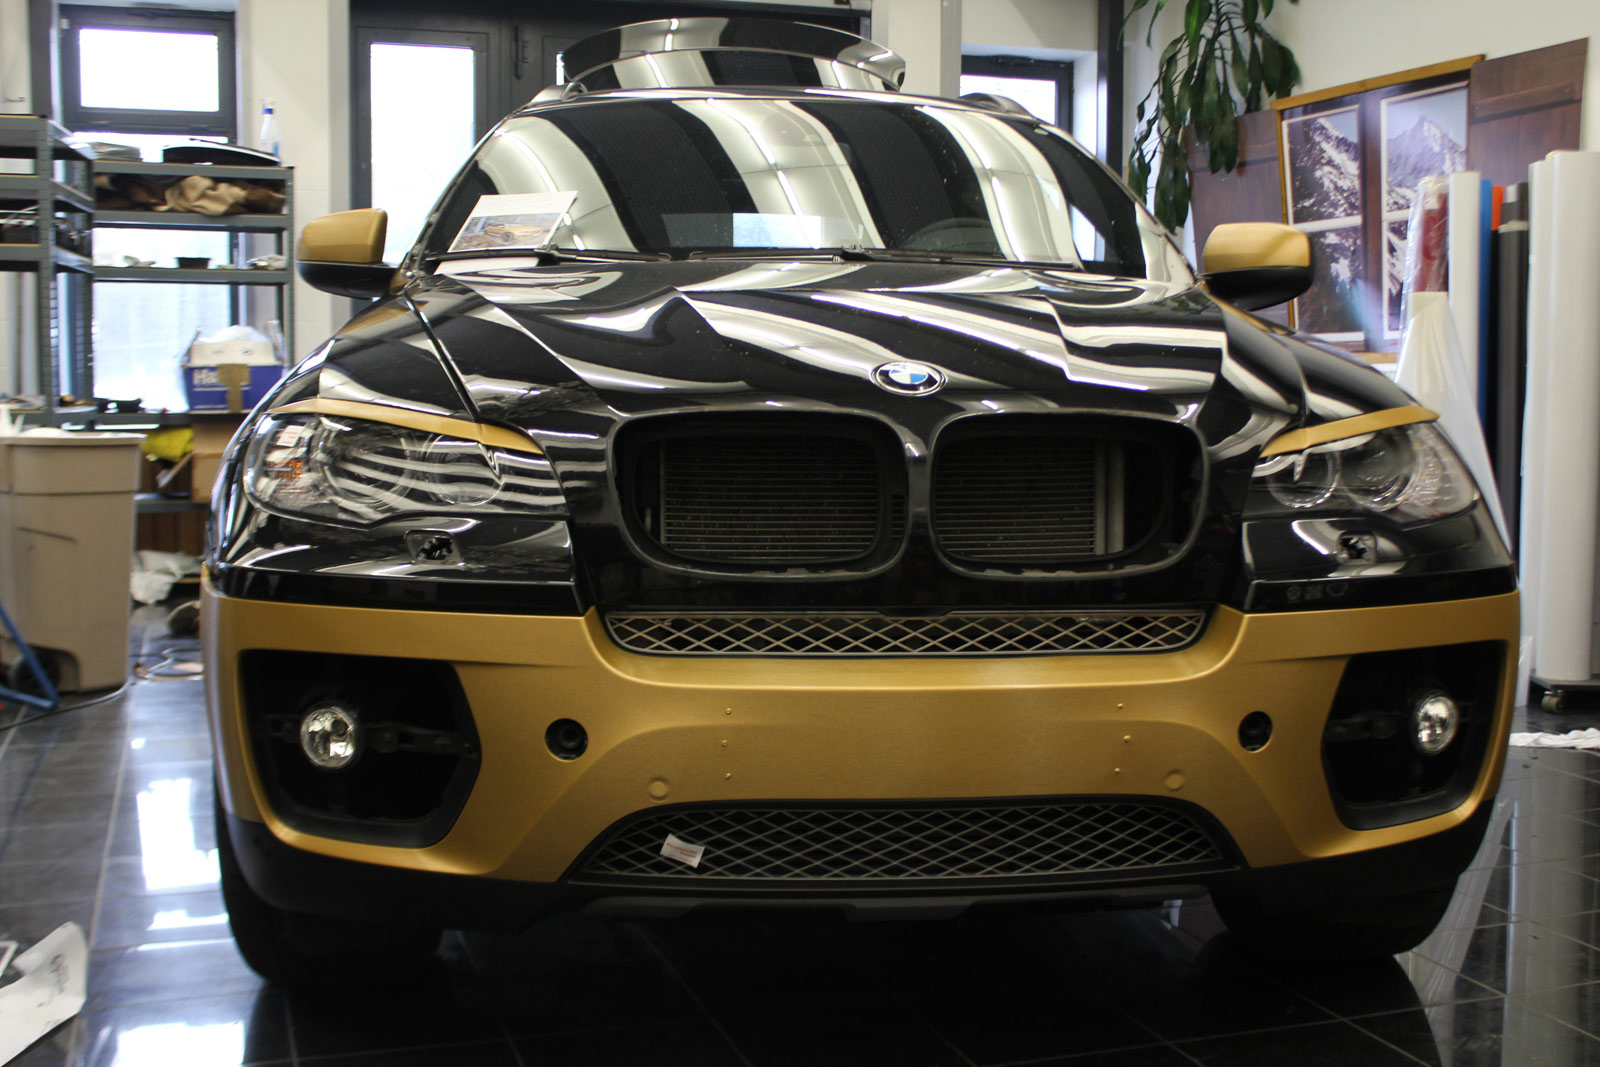 BMW_X6_VERKLEBUNG_BRUSHED_GOLD_22